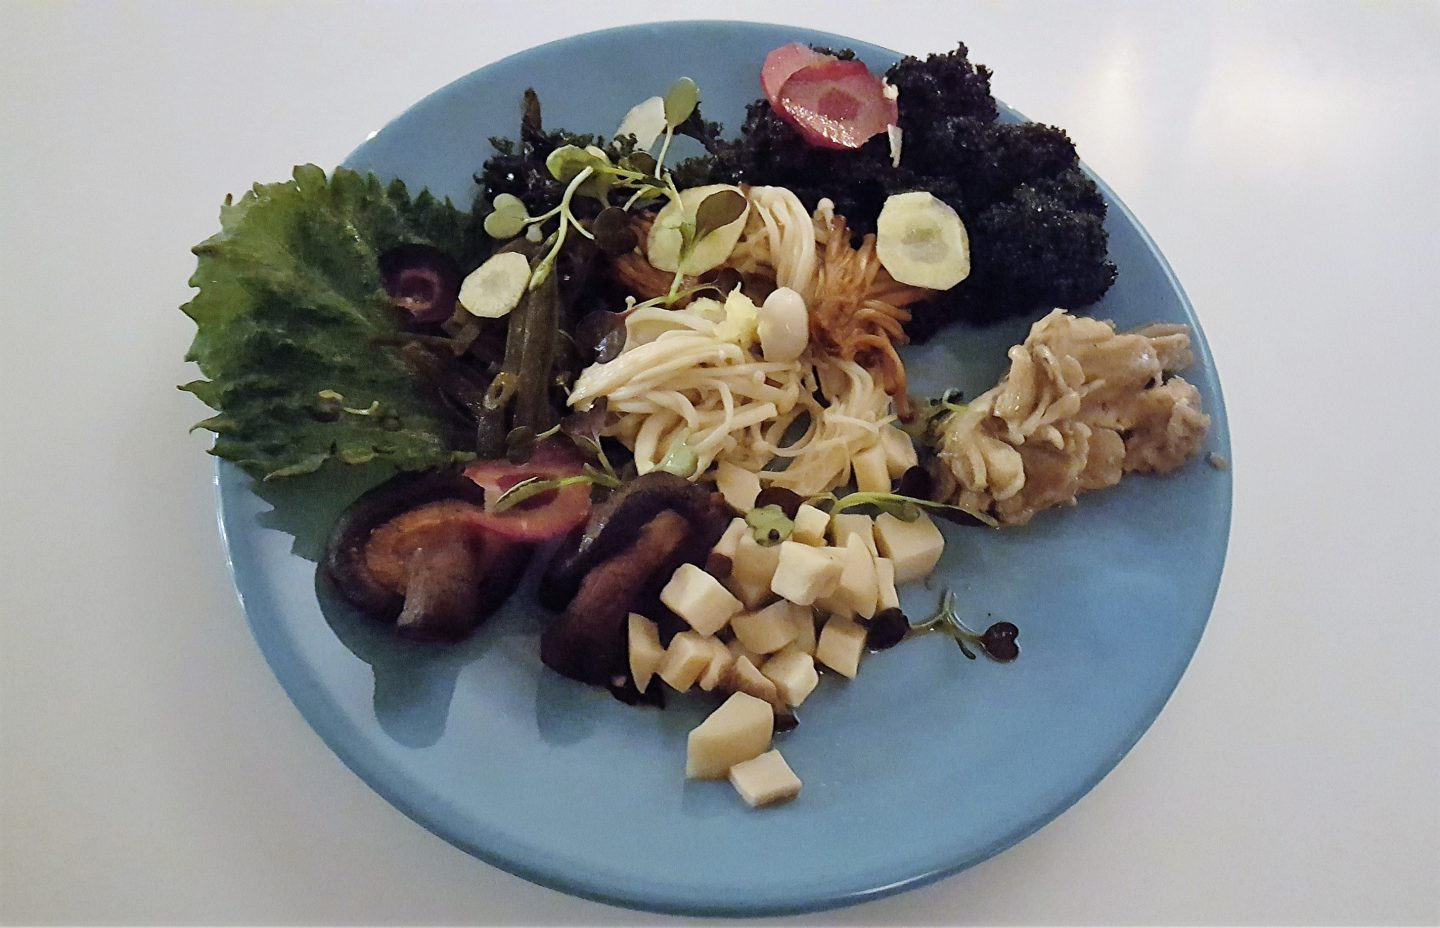 SDP Supper Club: A Mushroom Winter Feast